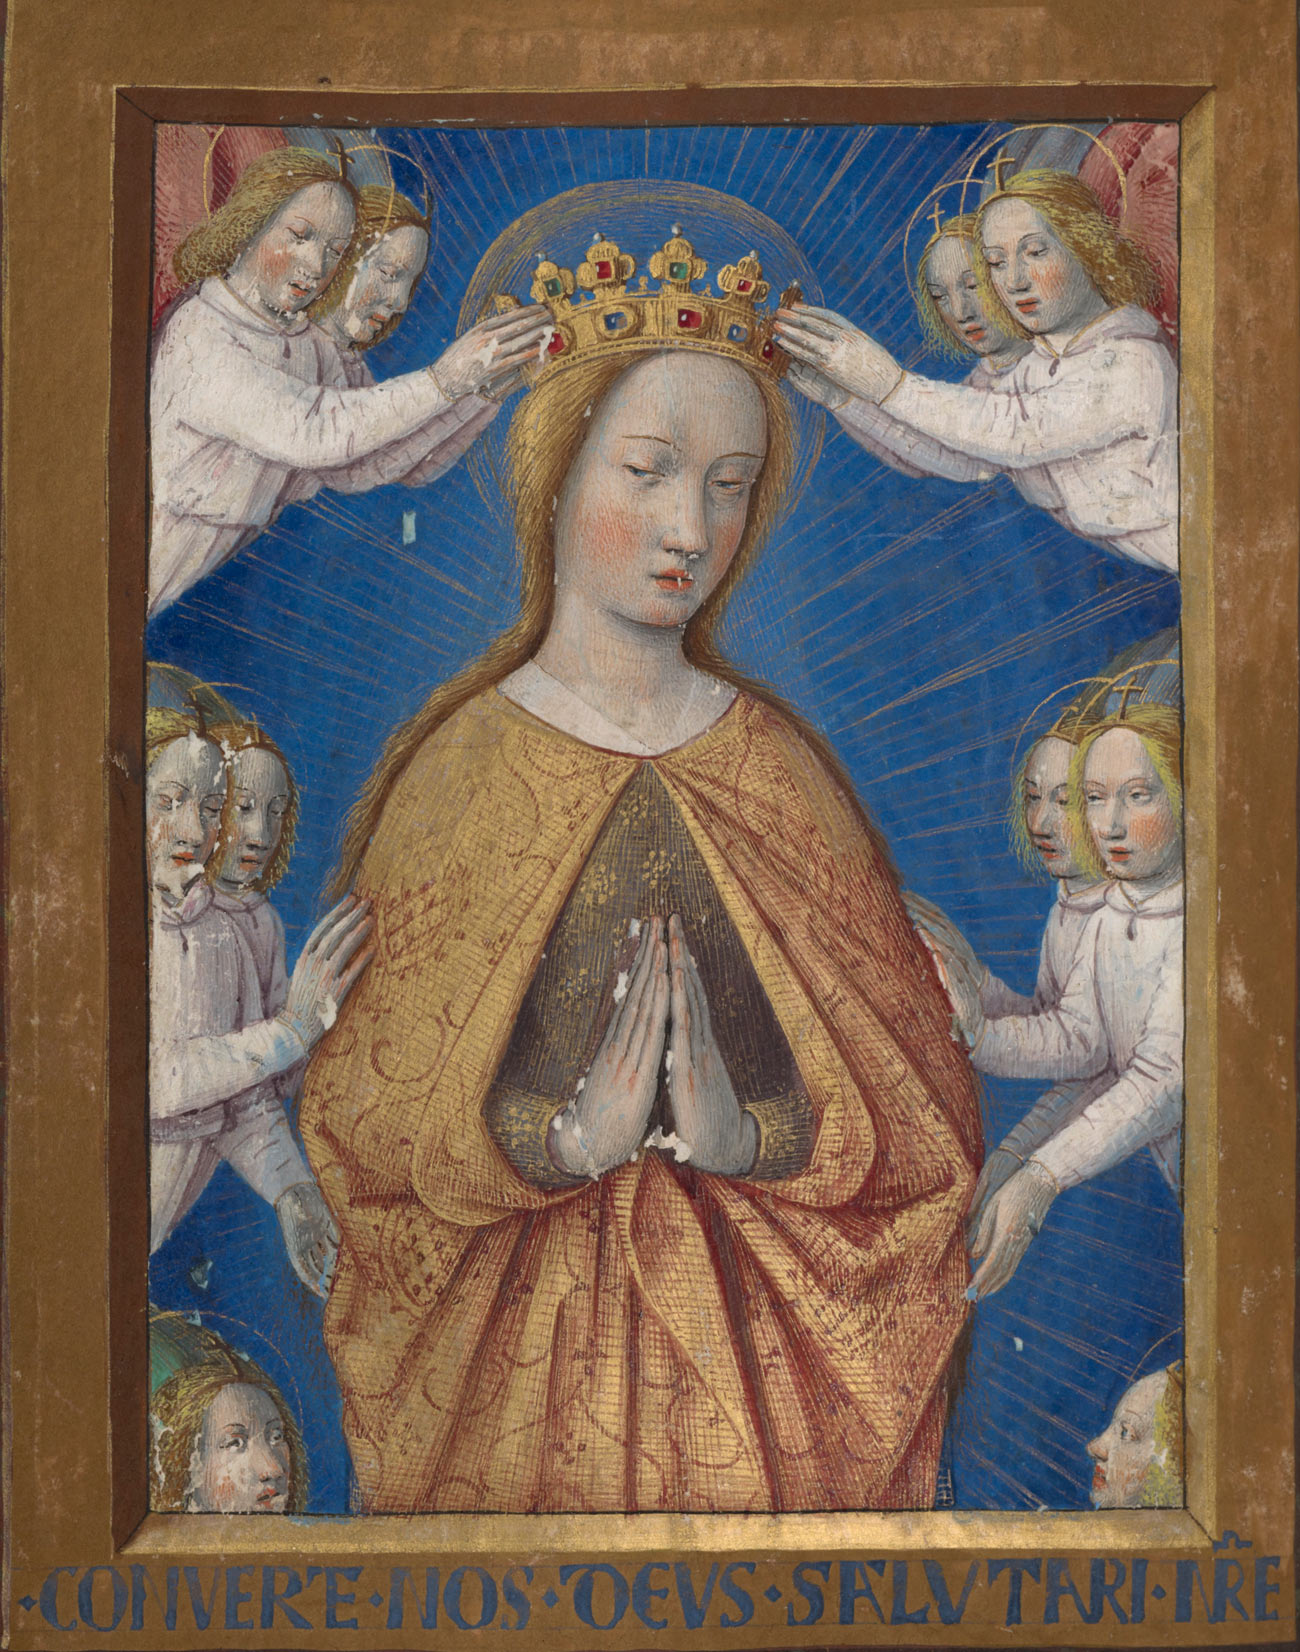 Four angels place a crown on a woman's head while six other angels look on